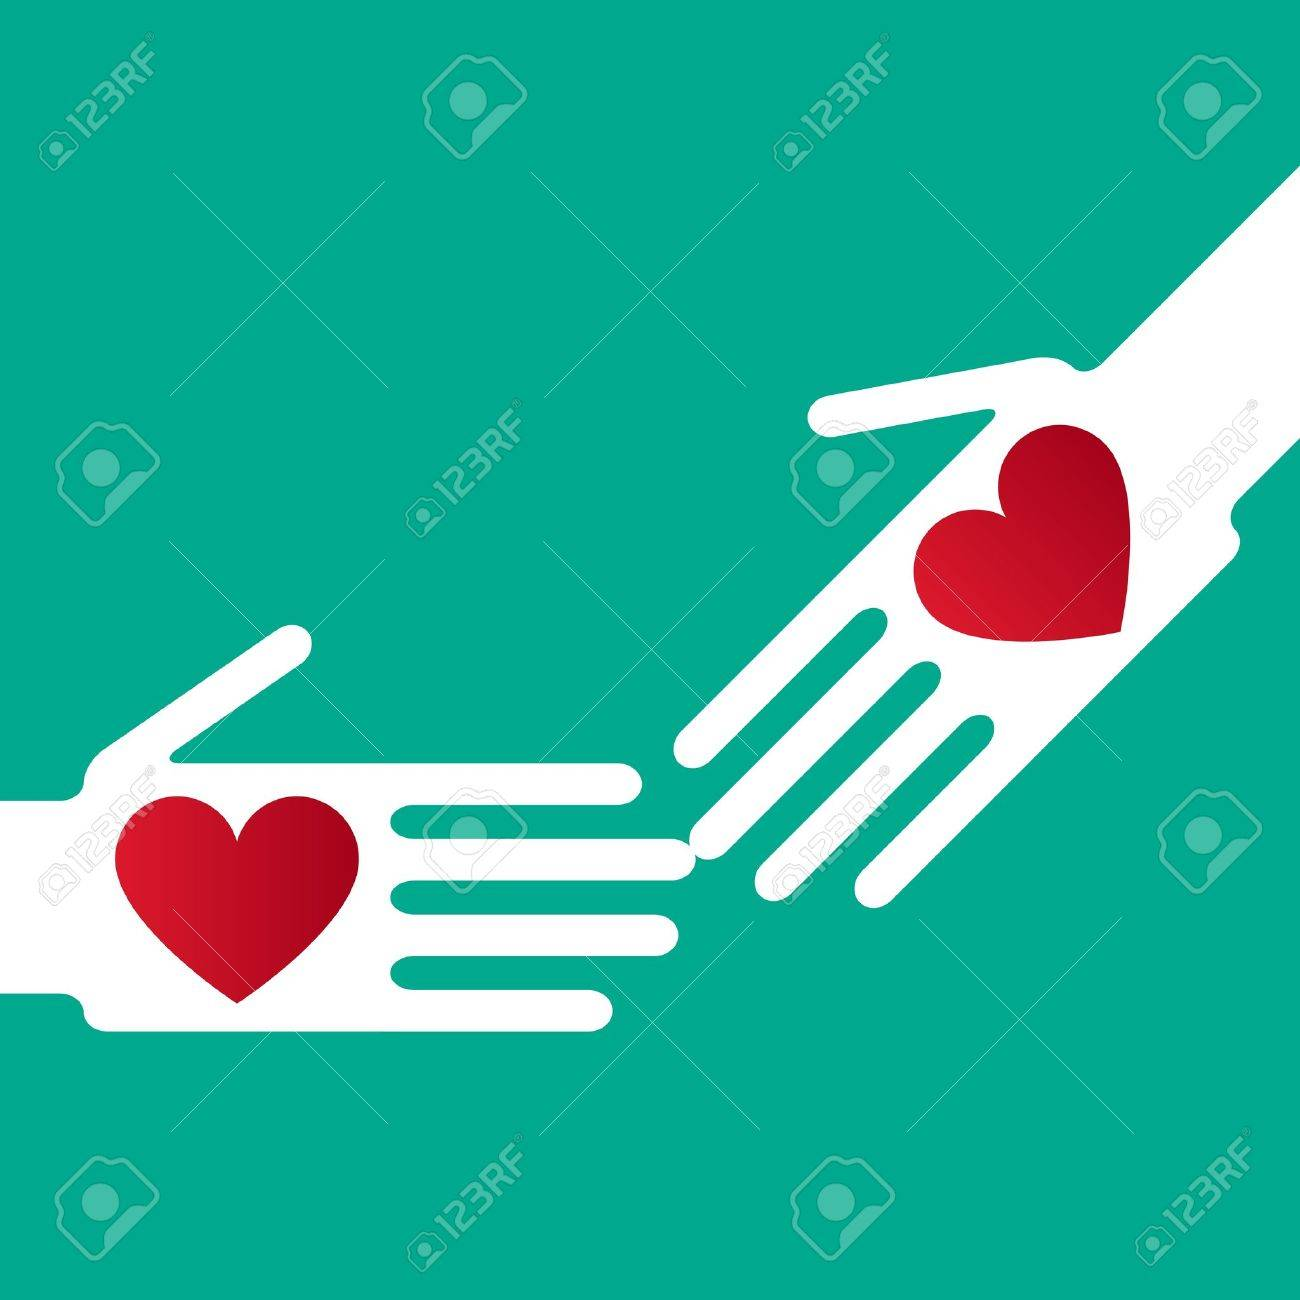 Silhouette helping hand whit Helping Hand Icon